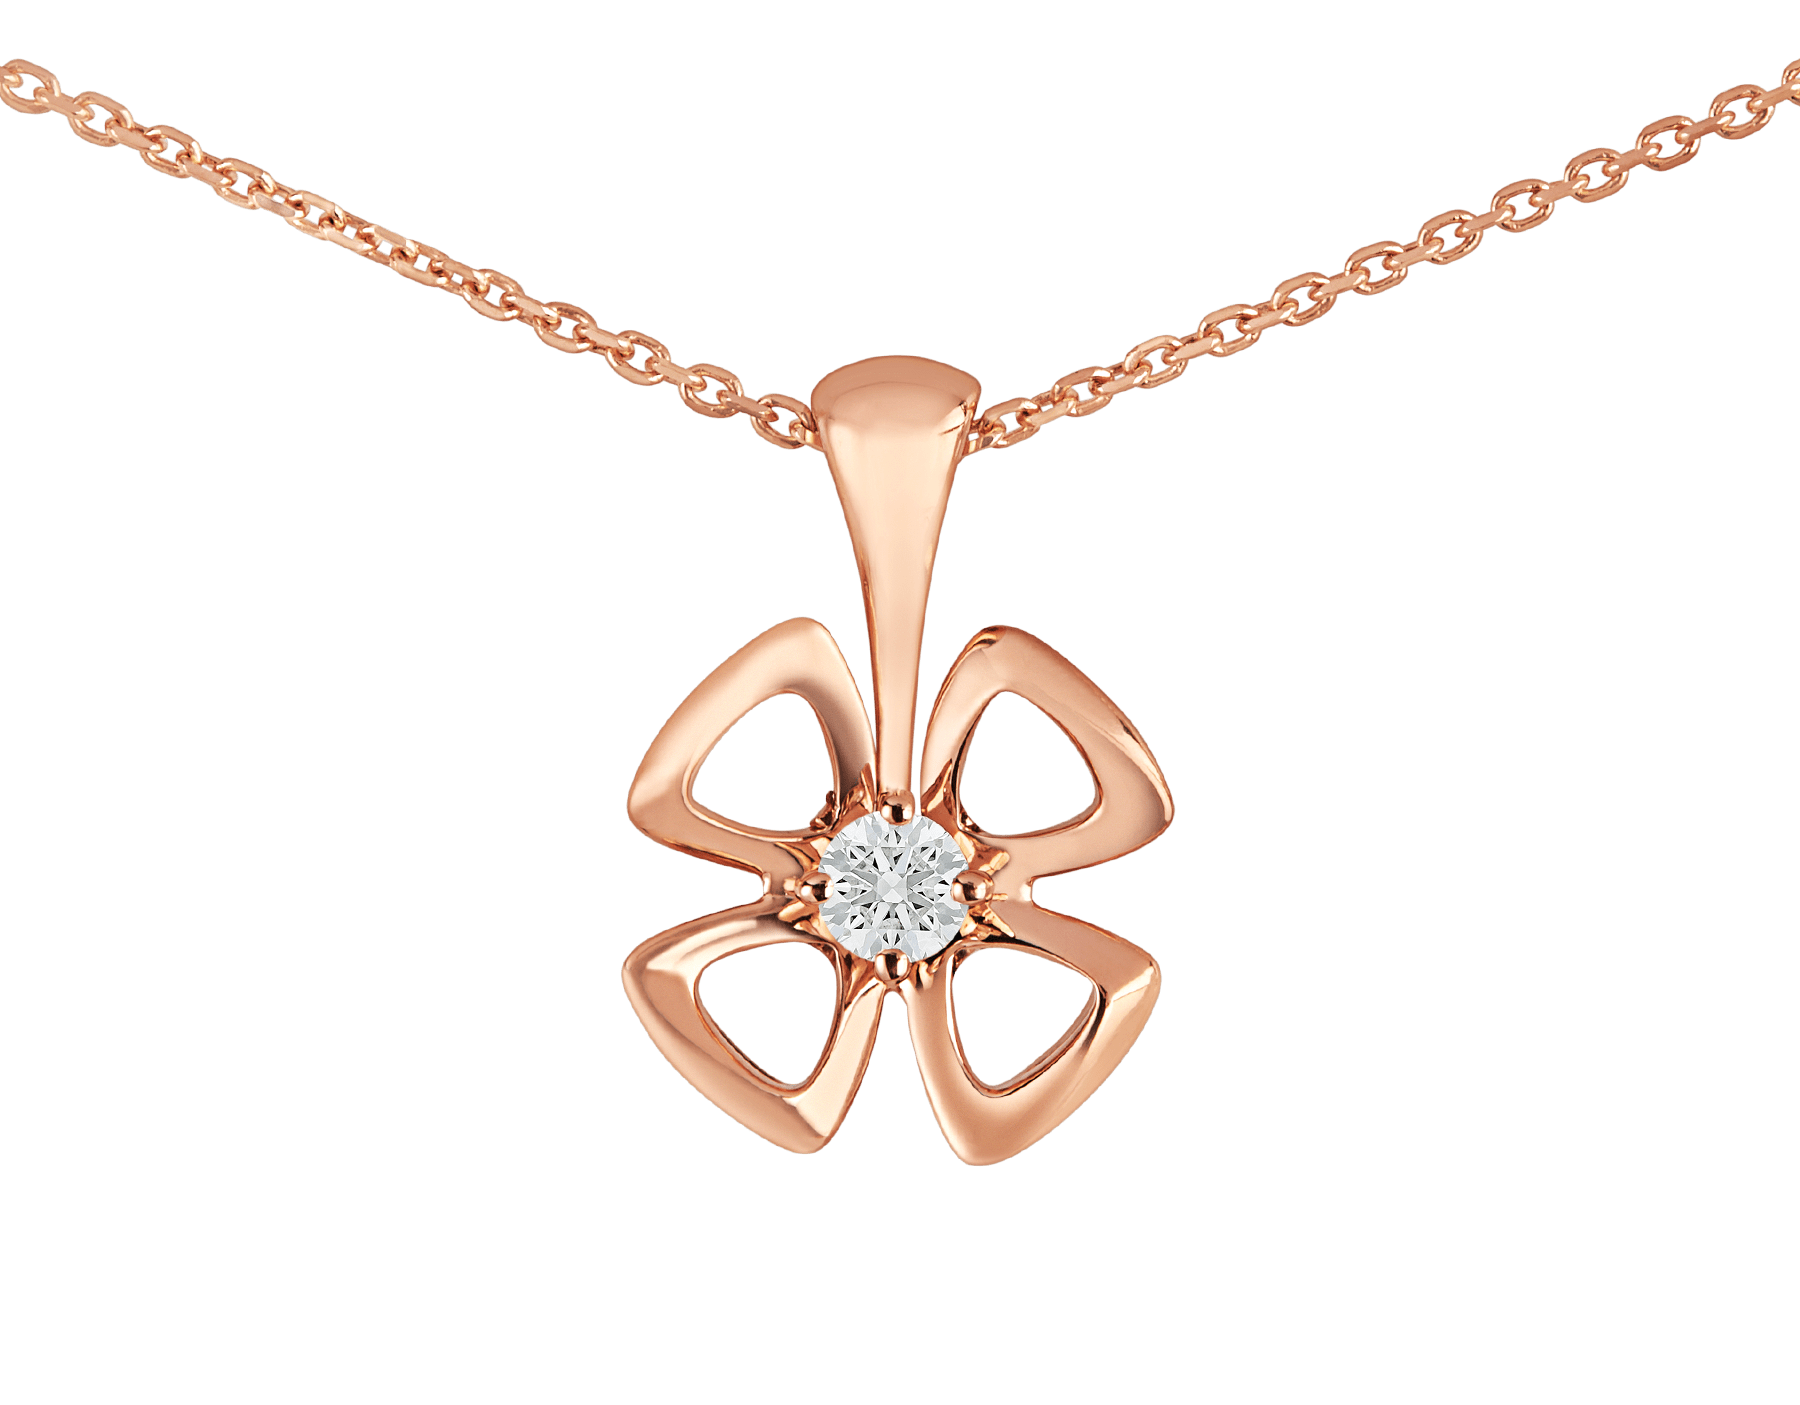 Fiorever 18 kt rose gold necklace set with a central diamond (0.10 ct) 355324 image 3